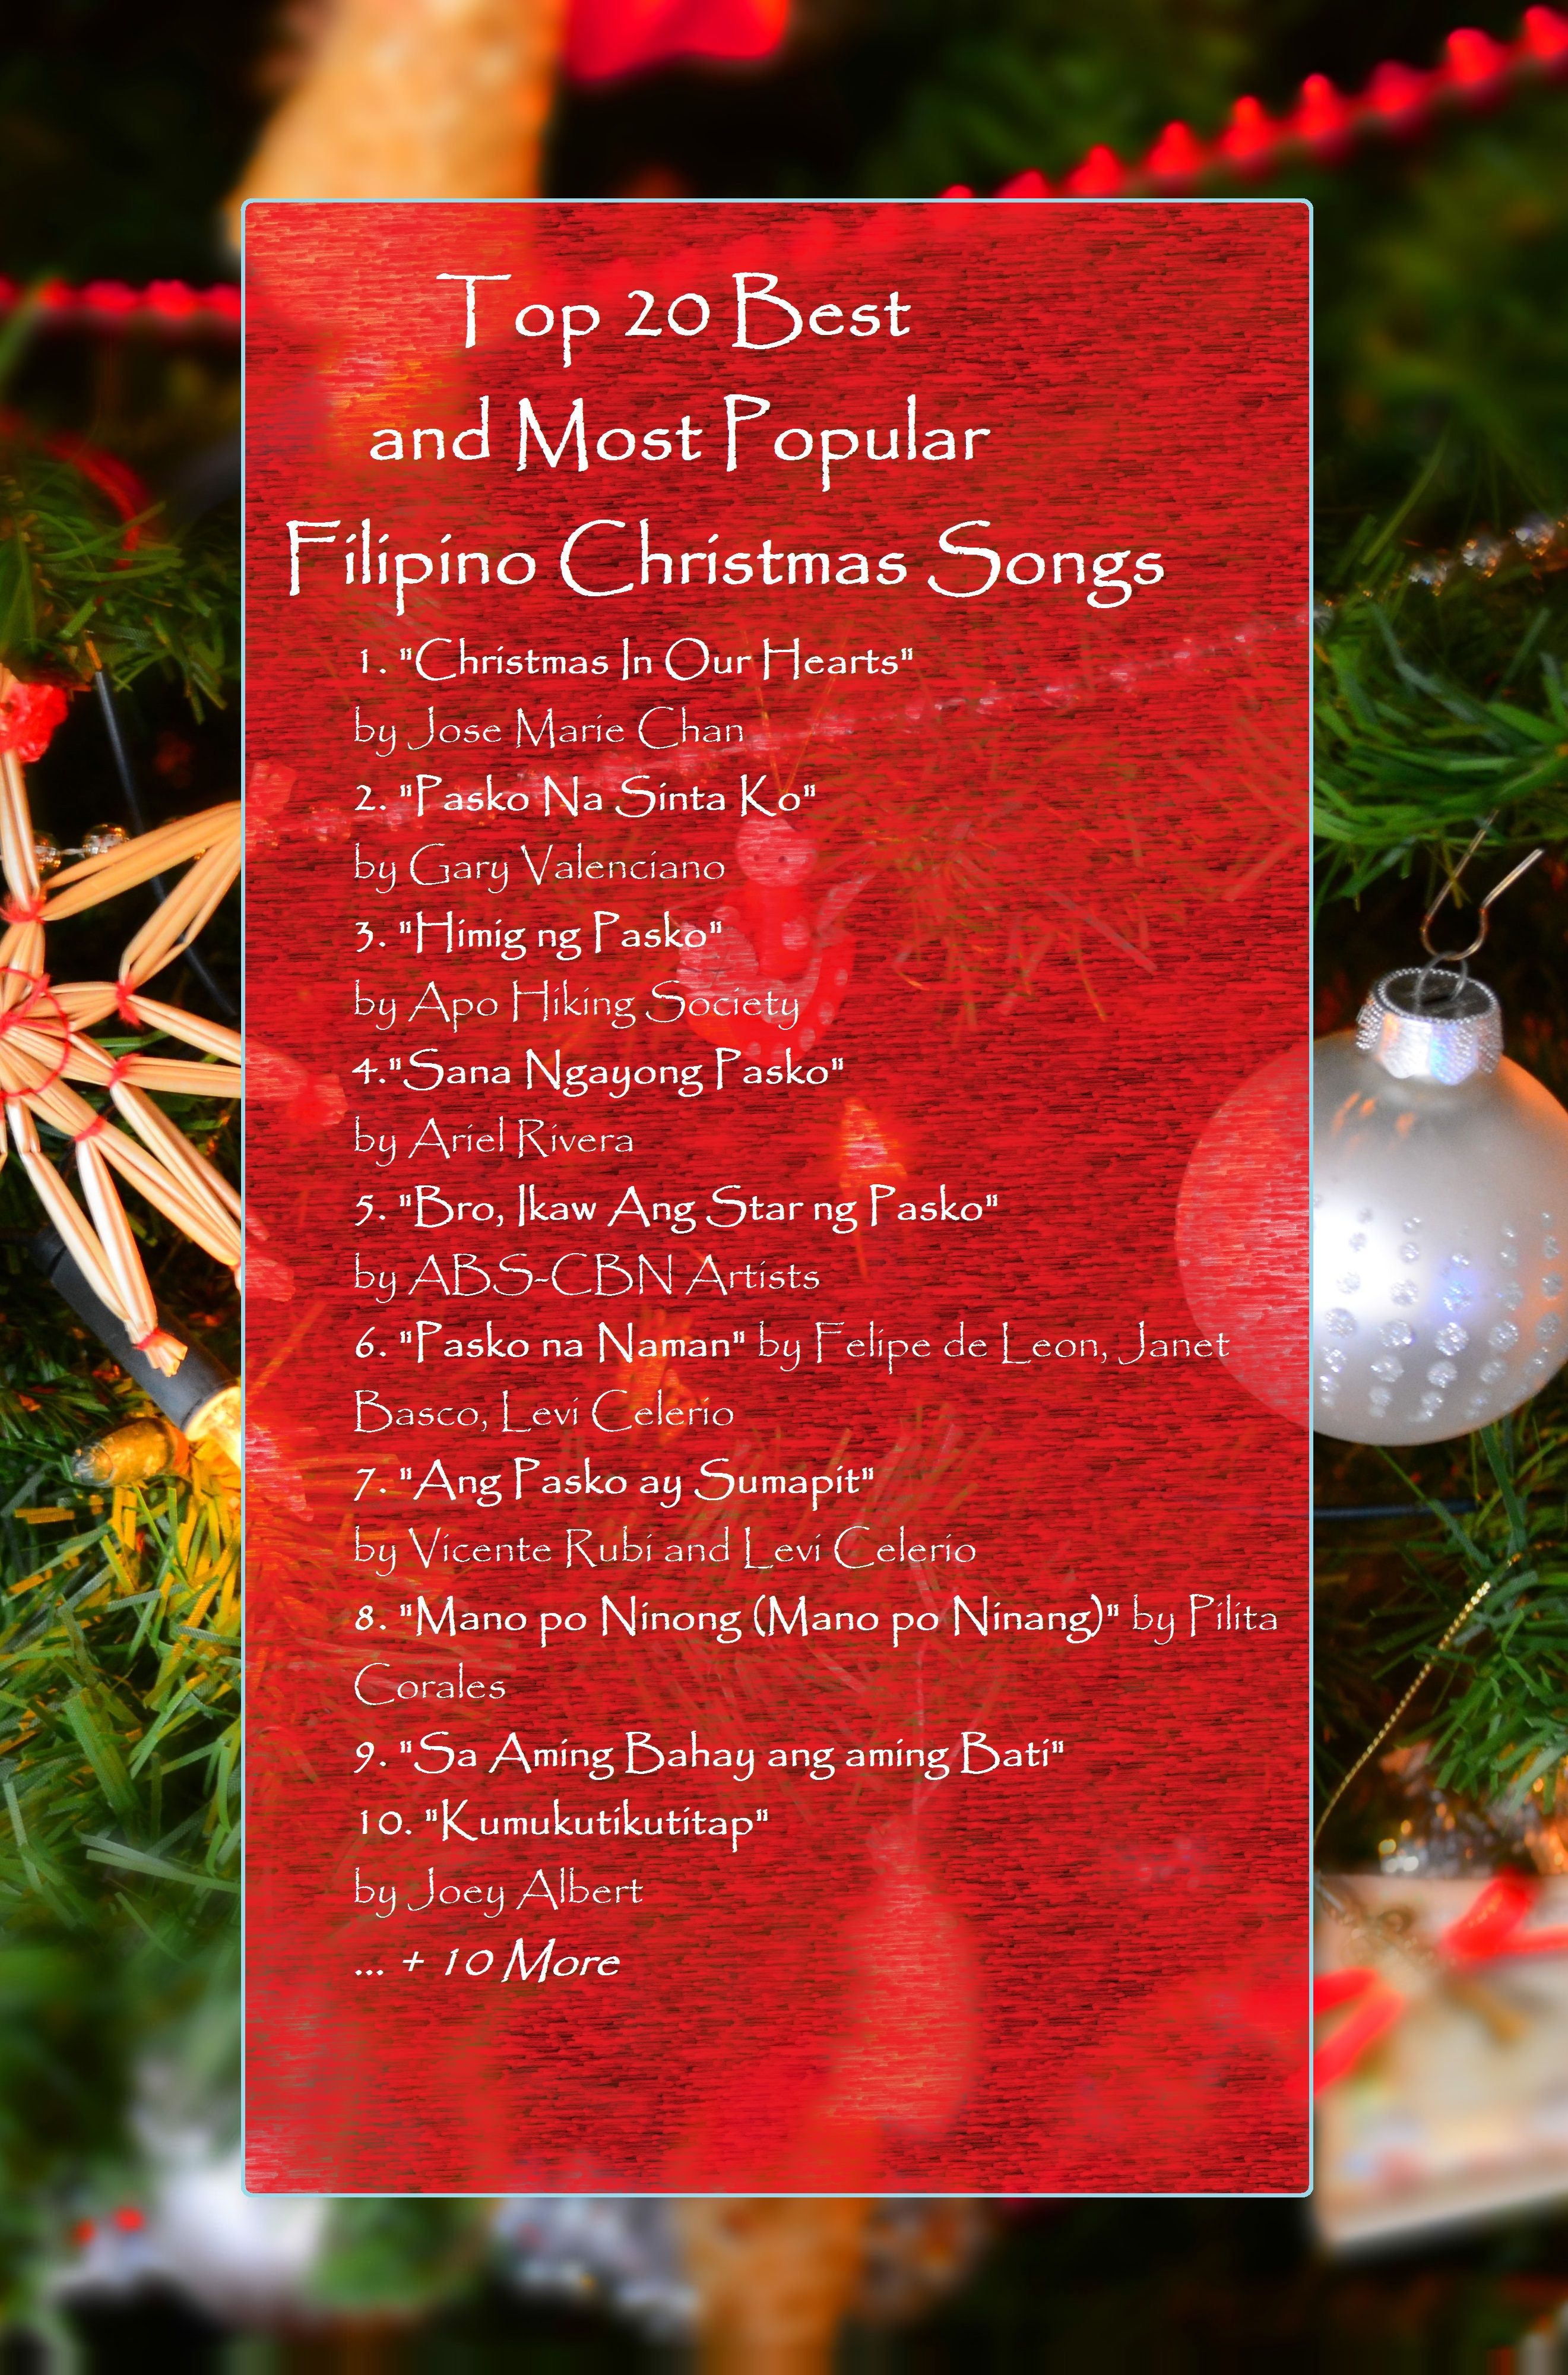 Top 20 Best and Most Popular Filipino Christmas Songs